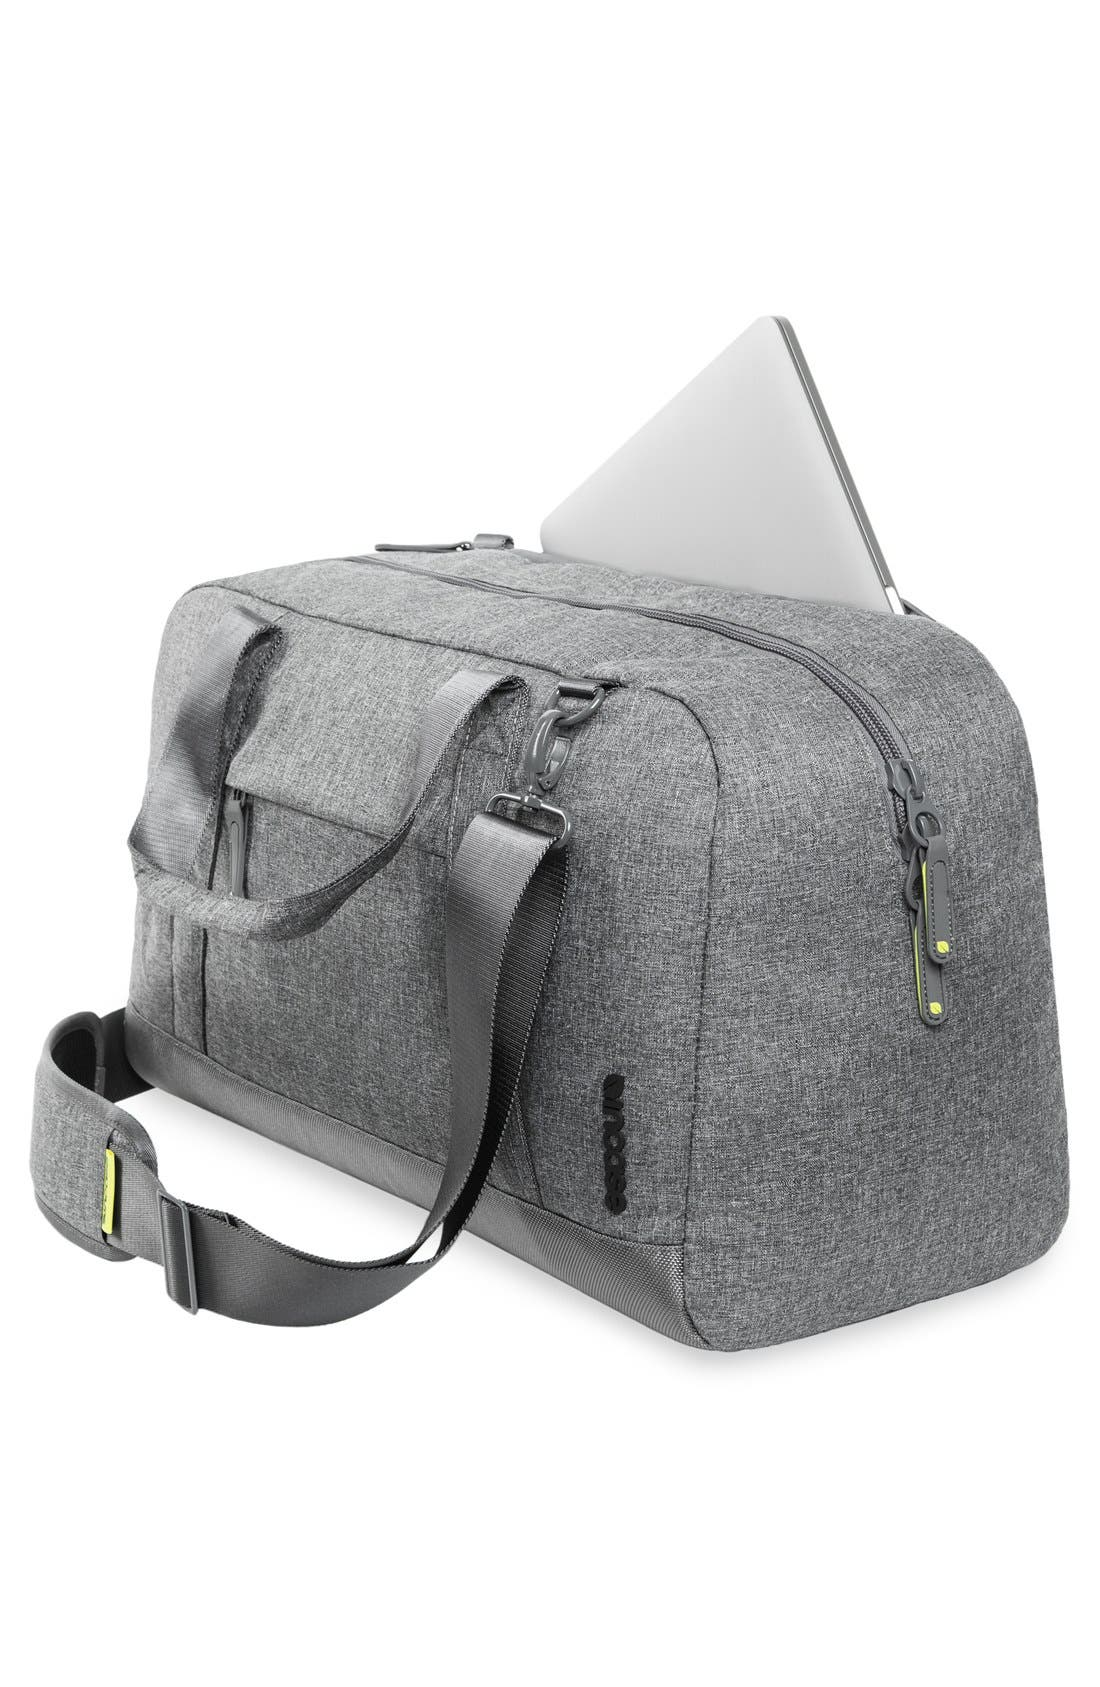 EO Duffel Bag,                             Alternate thumbnail 6, color,                             Heather Grey